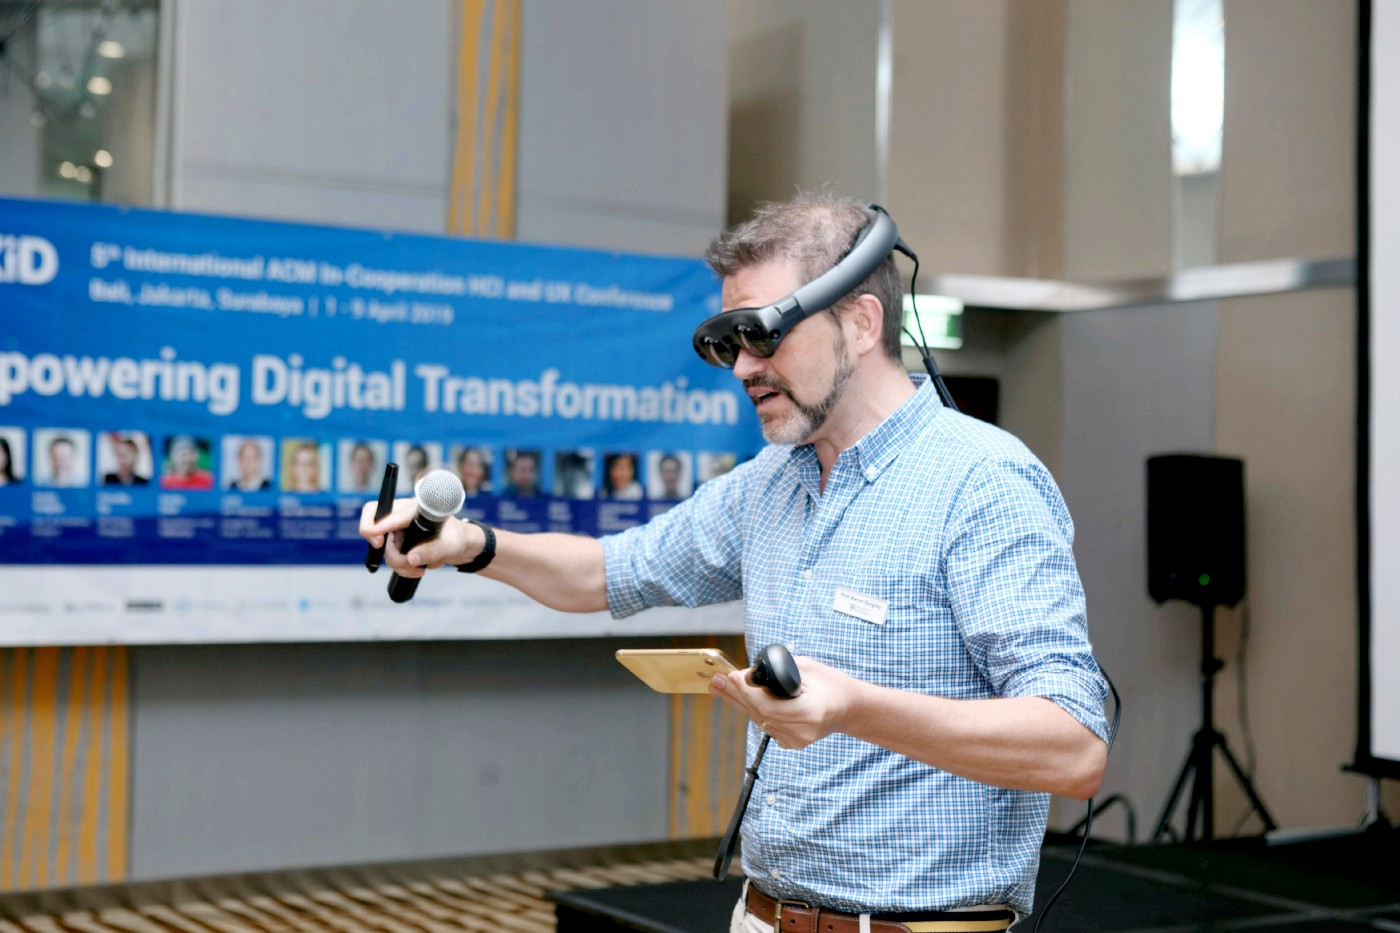 Digital Transformation with Mixed Reality